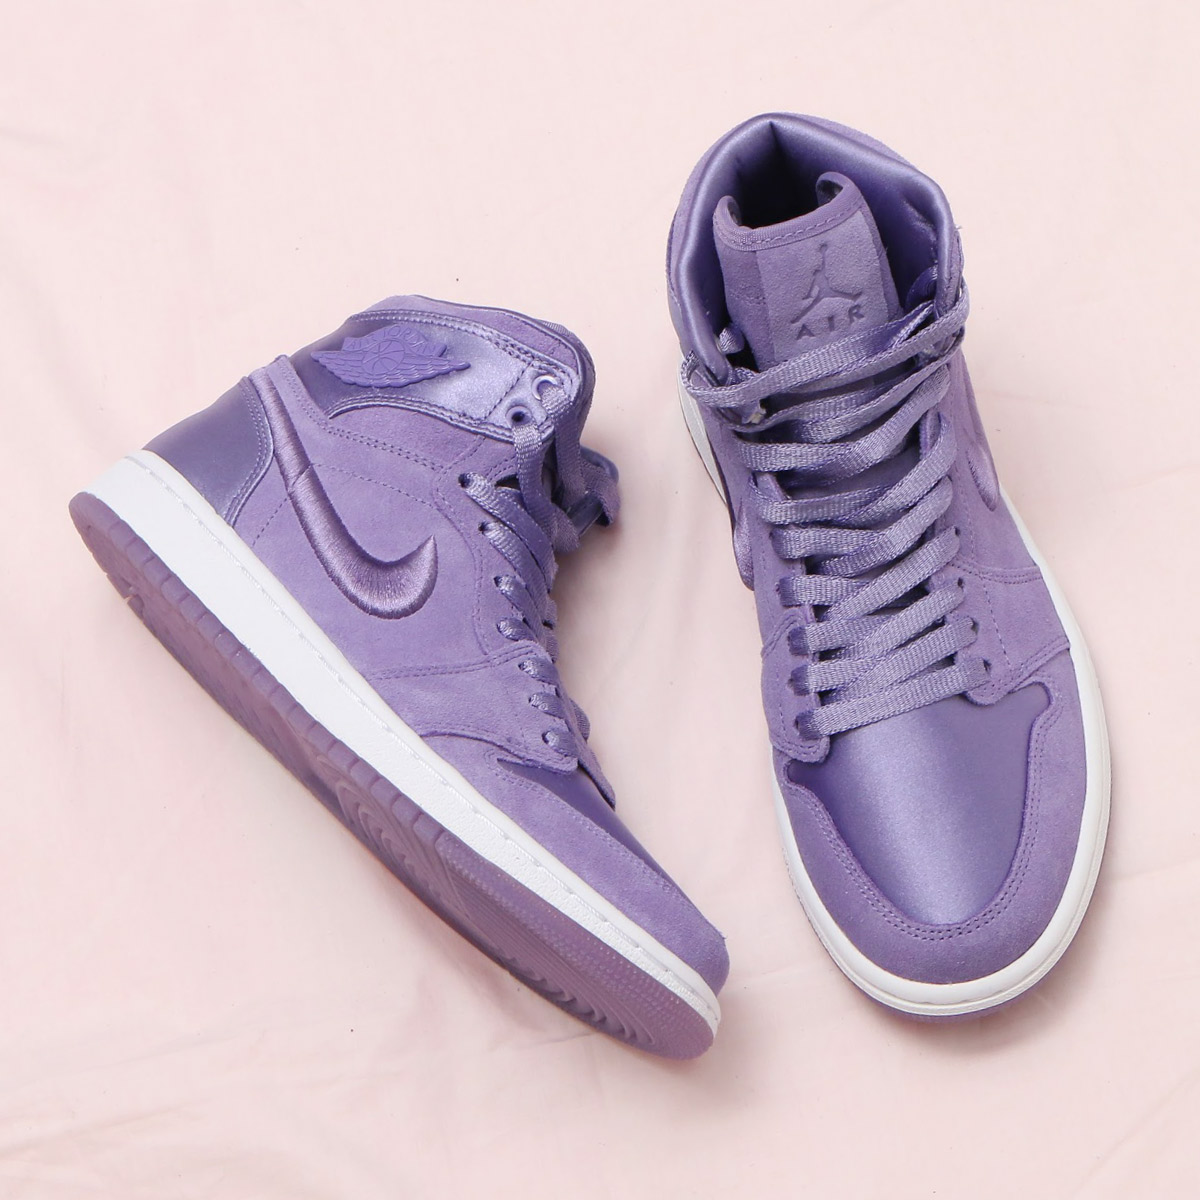 1b1b5f24152a NIKE WMNS AIR JORDAN 1 RET HIGH SOH (Nike women Air Jordan 1 nostalgic high  SOH) (PURPLE EARTH WHITE-METALLIC GOLD) 18SP-S